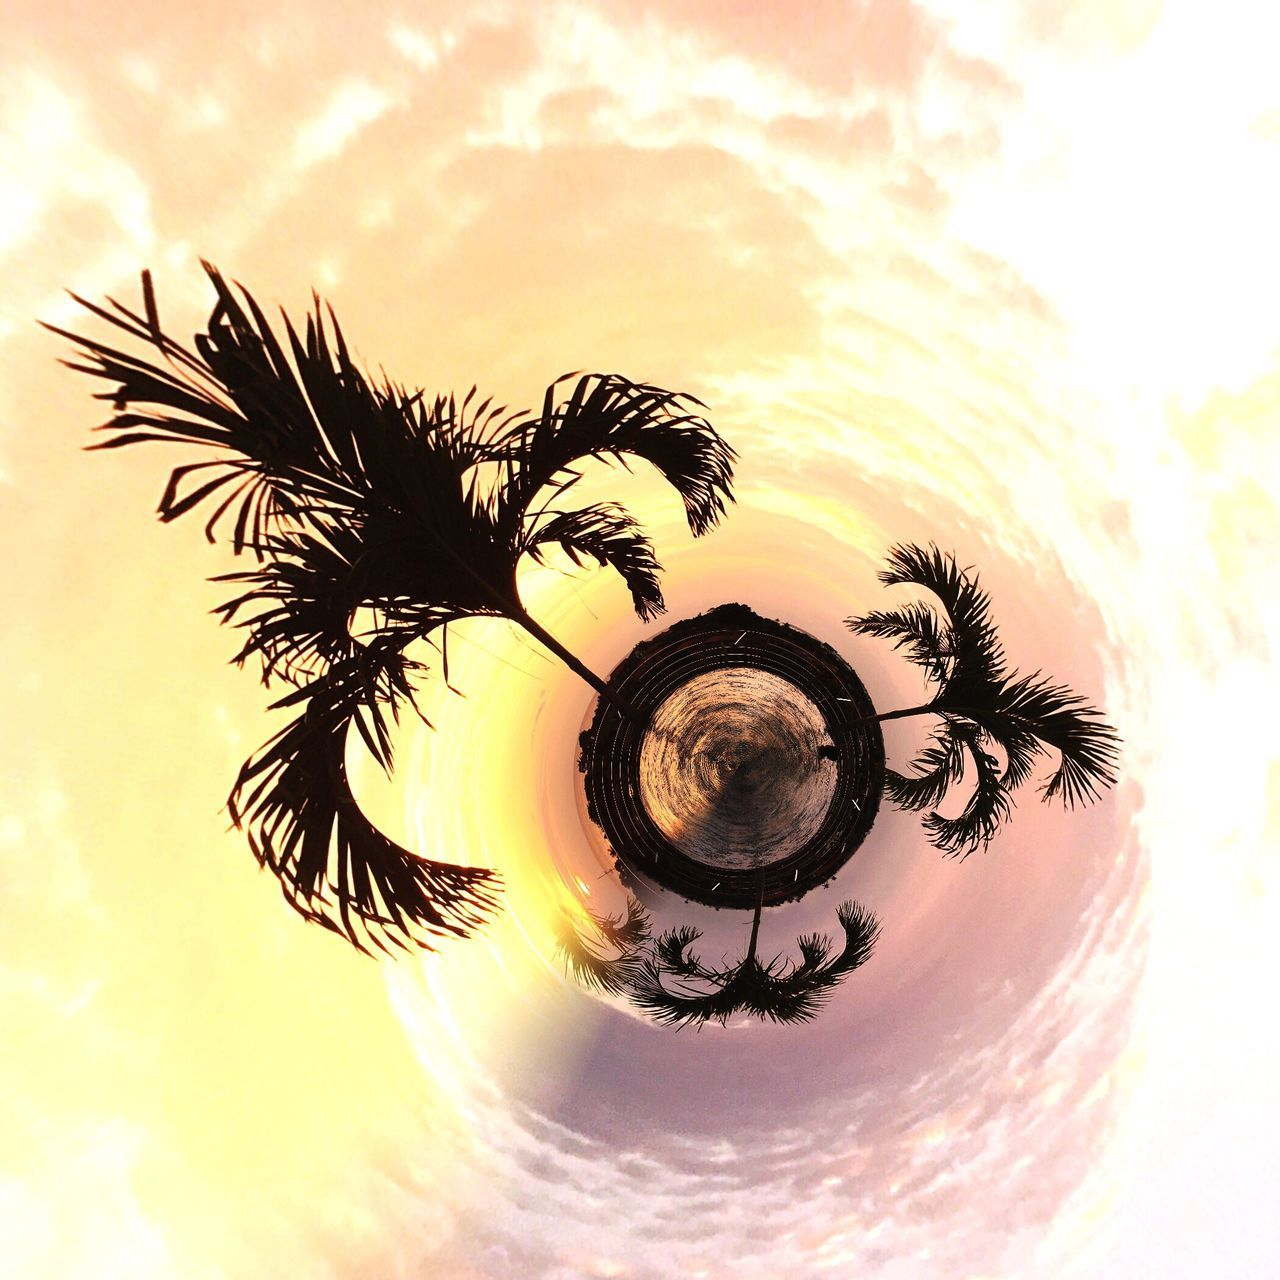 Check This Out Palm Trees Nature Abstract Photography Abstract CreativePhotographer Tinyplanet Tinyplanetfx Sky Planet View Taking Photos Check This Out